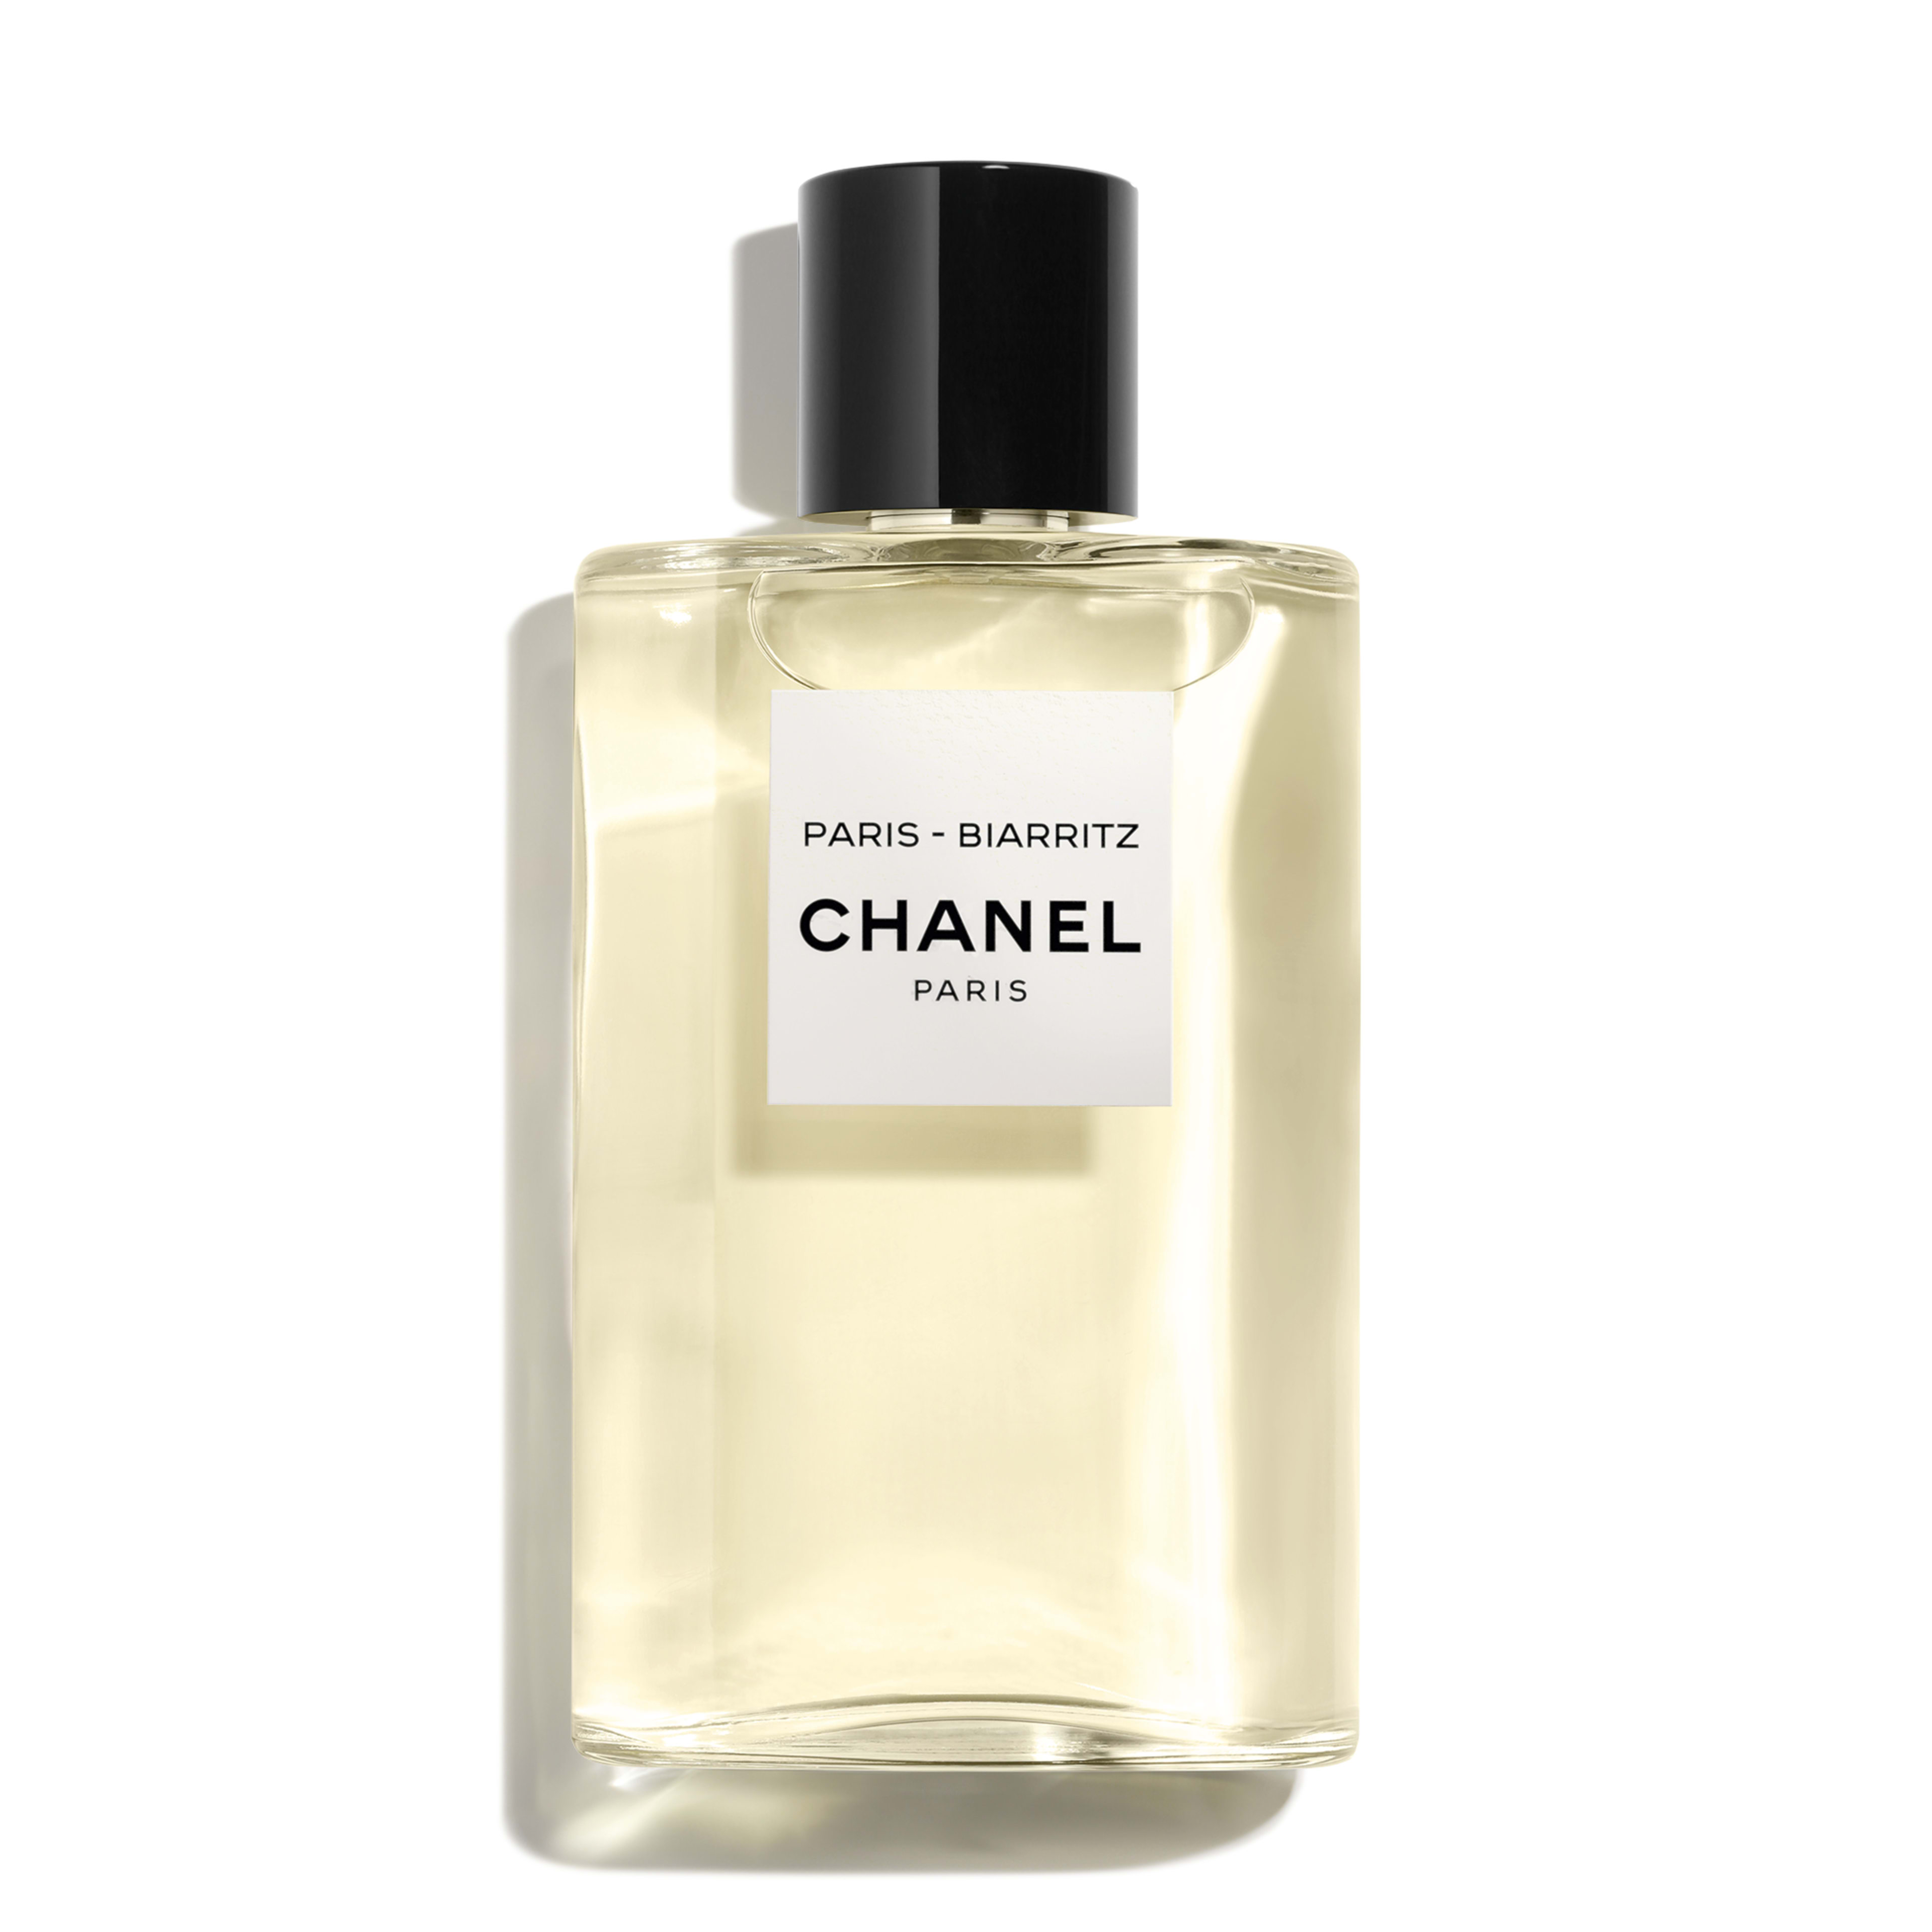 PARIS - BIARRITZ - fragrance - 4.2FL. OZ. - Default view